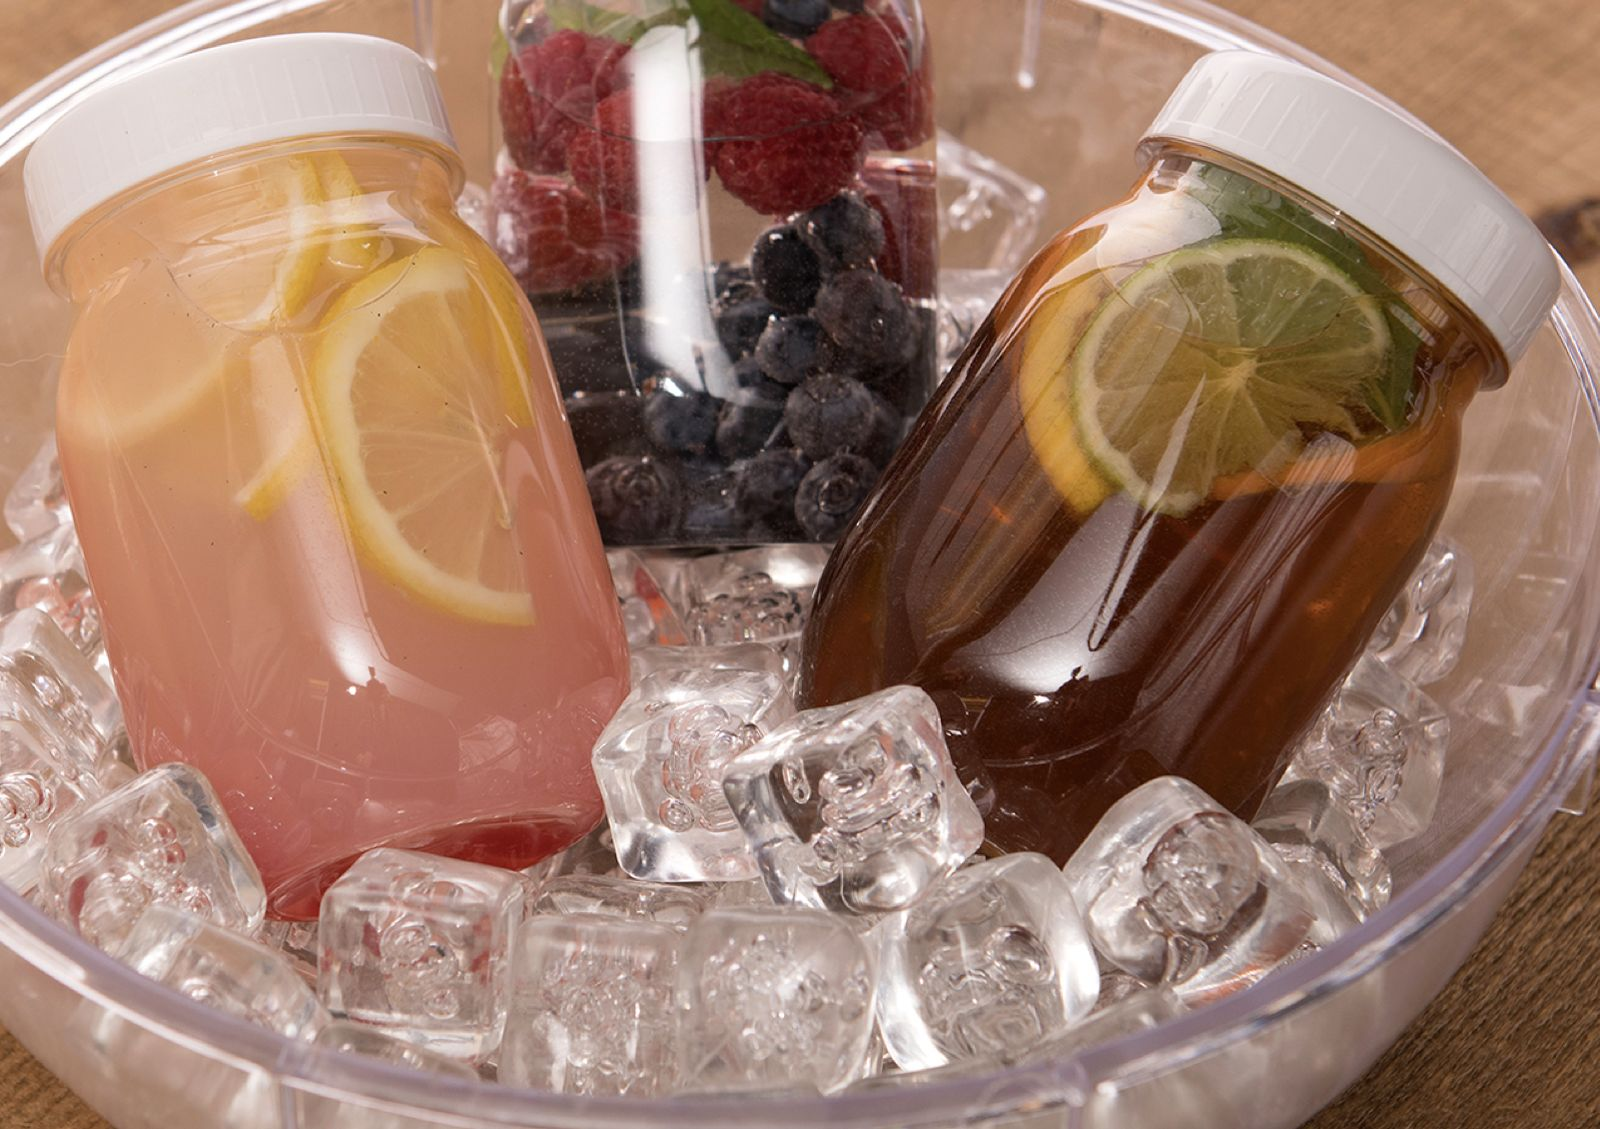 Novolex Offers New Solutions for Restaurants, Serving Up 'Drinks to Go'